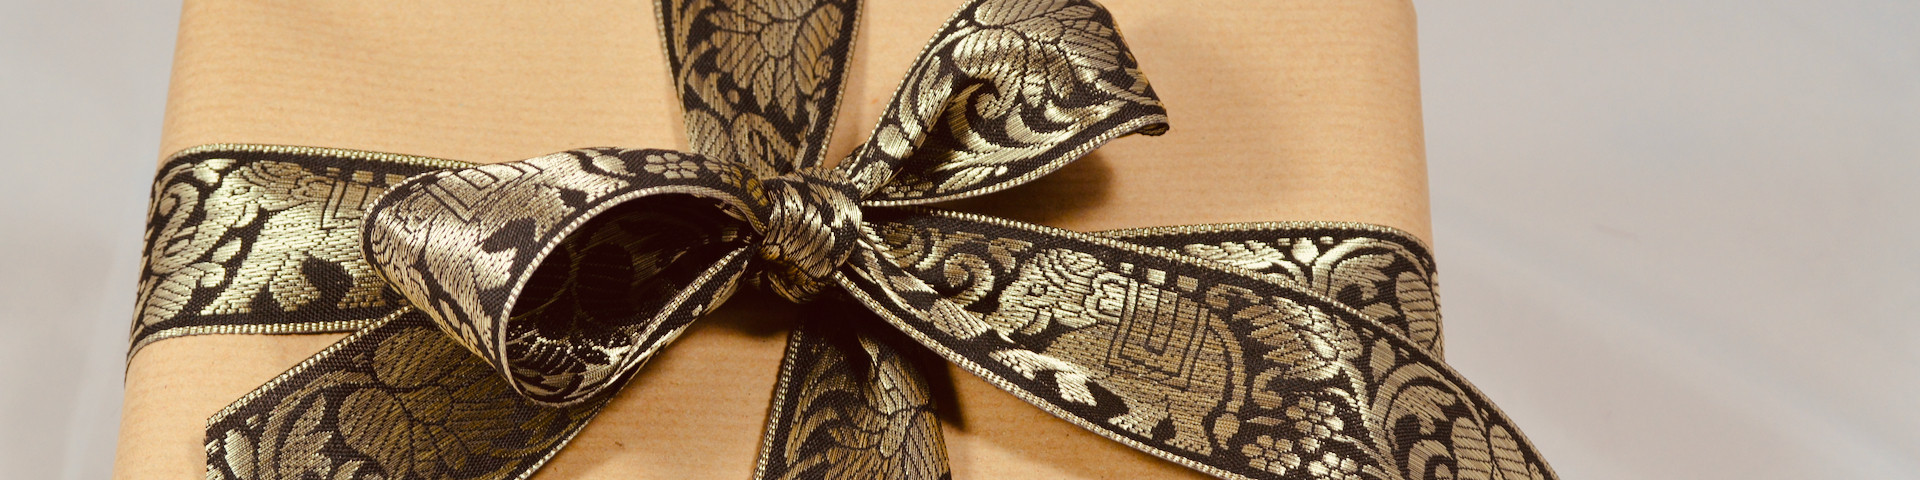 shop elephant wrapping paper & gift ribbon